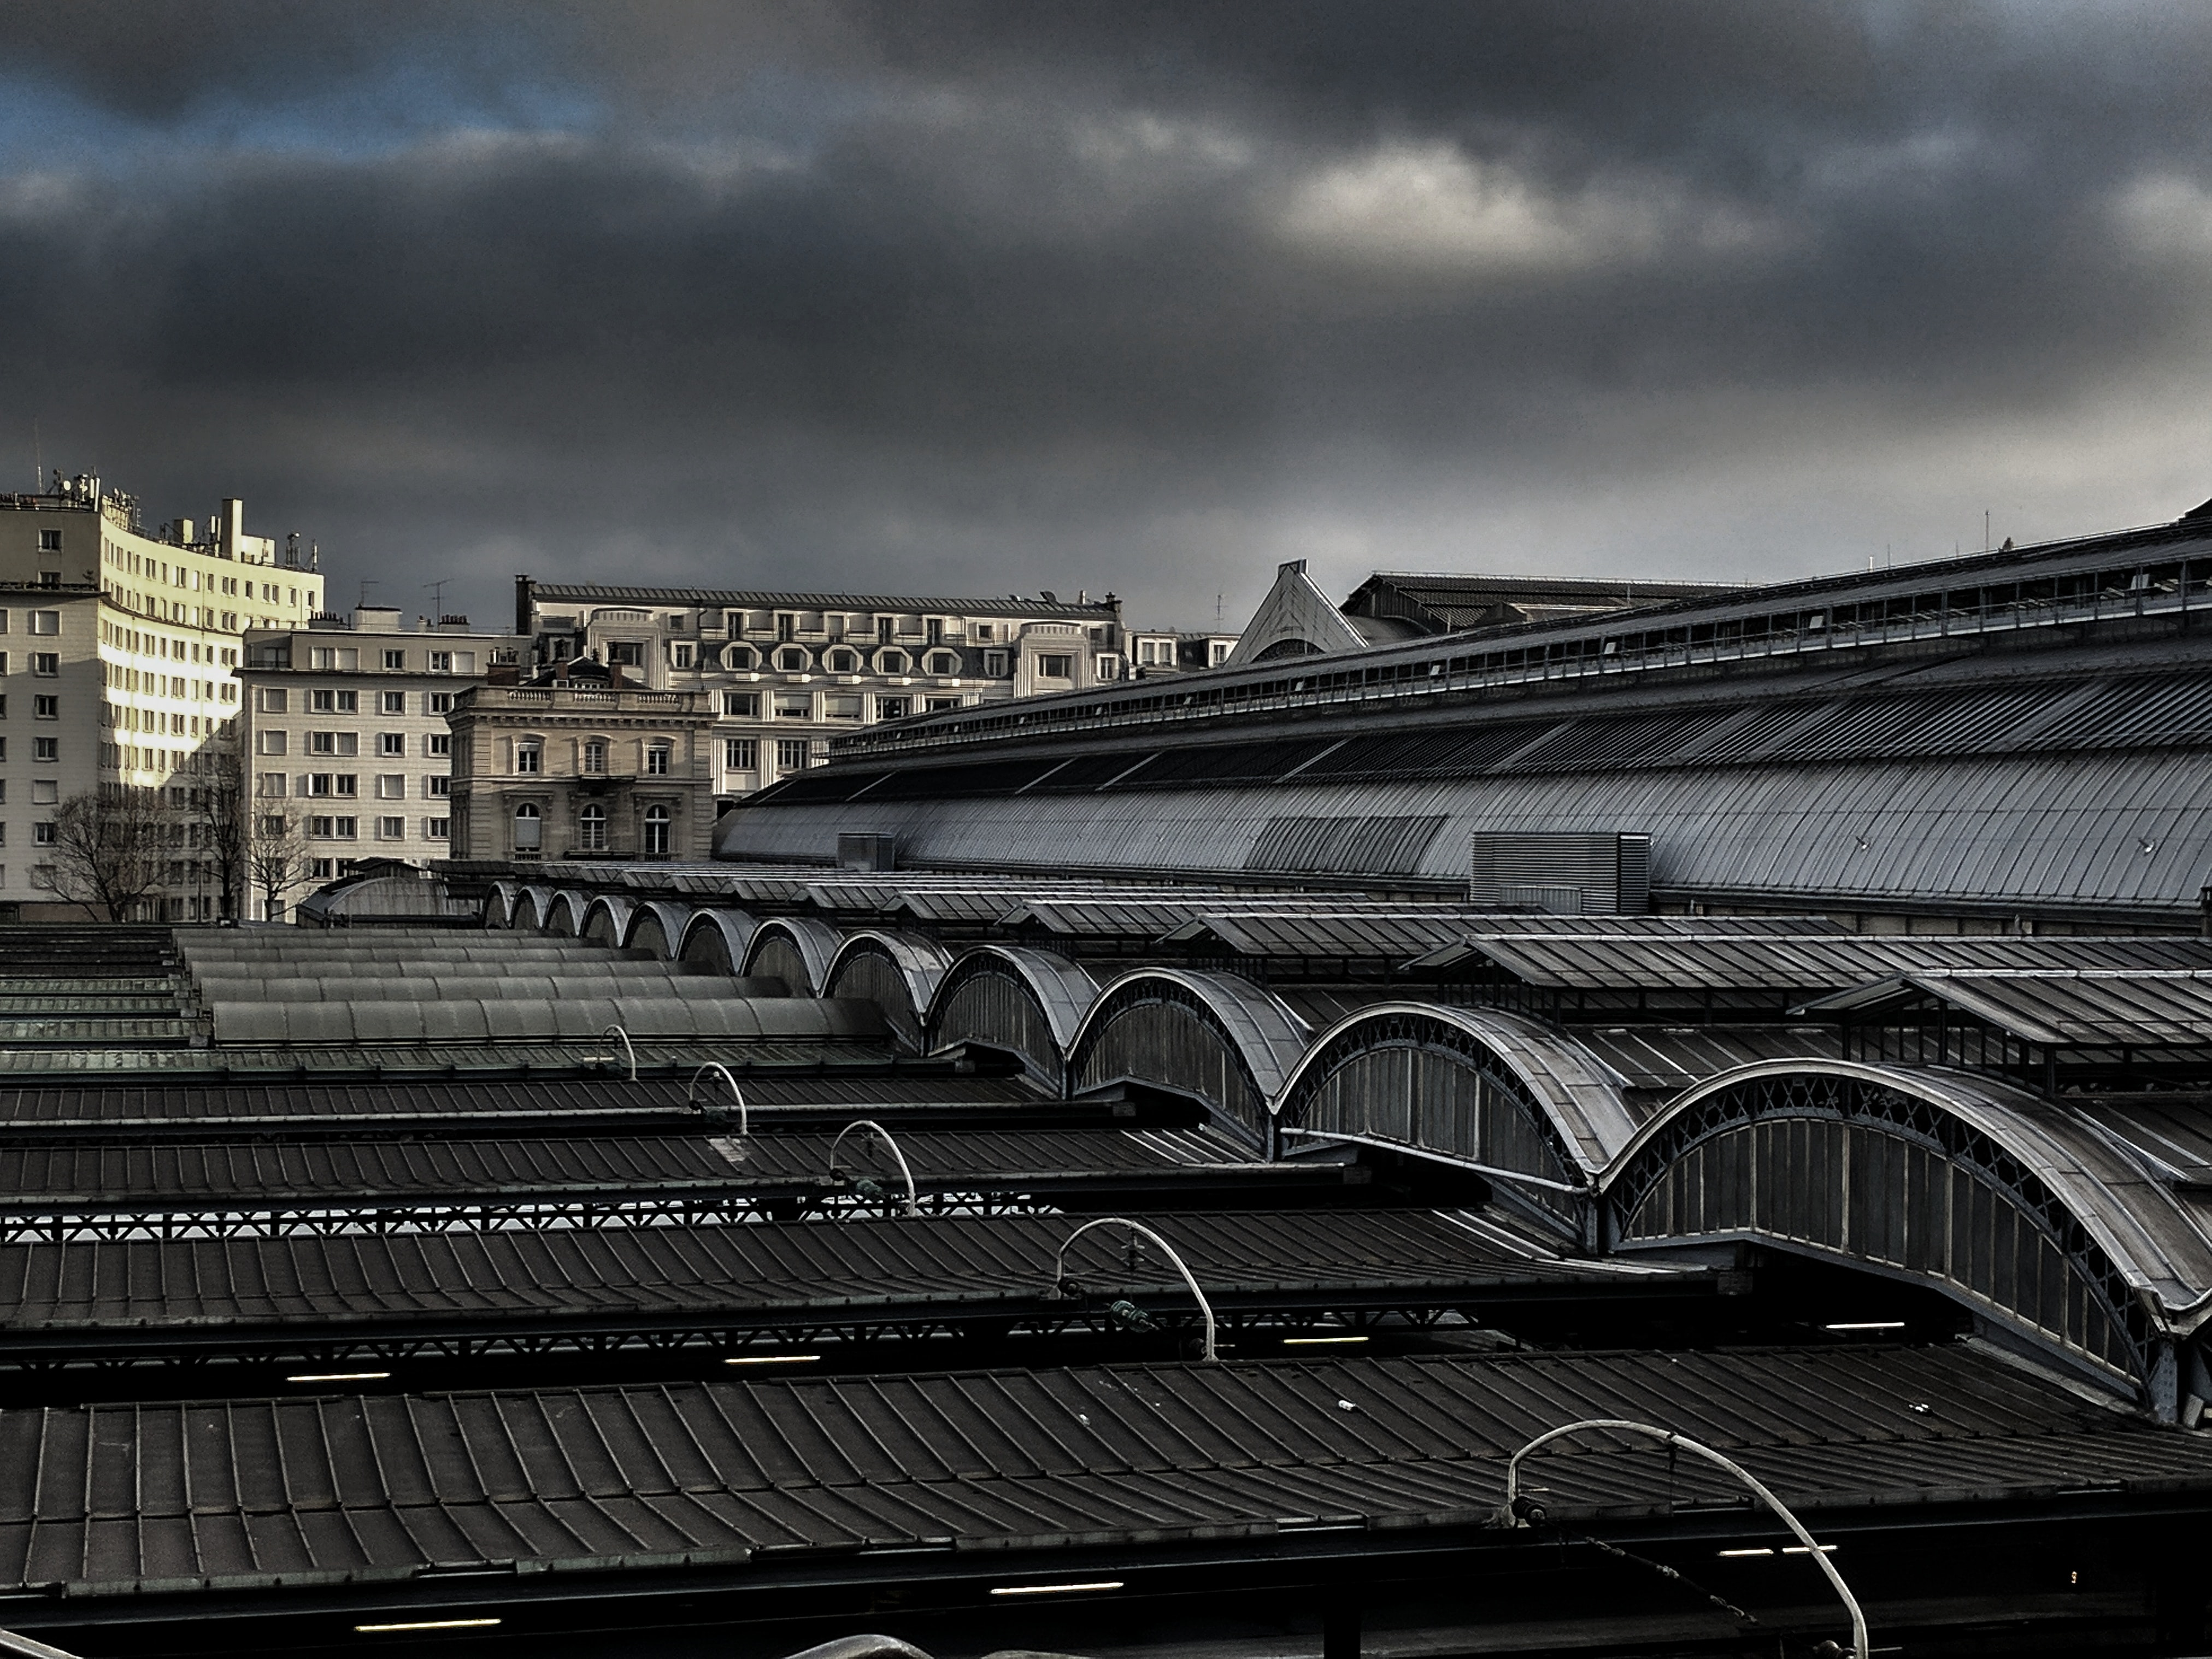 view of concrete building roof